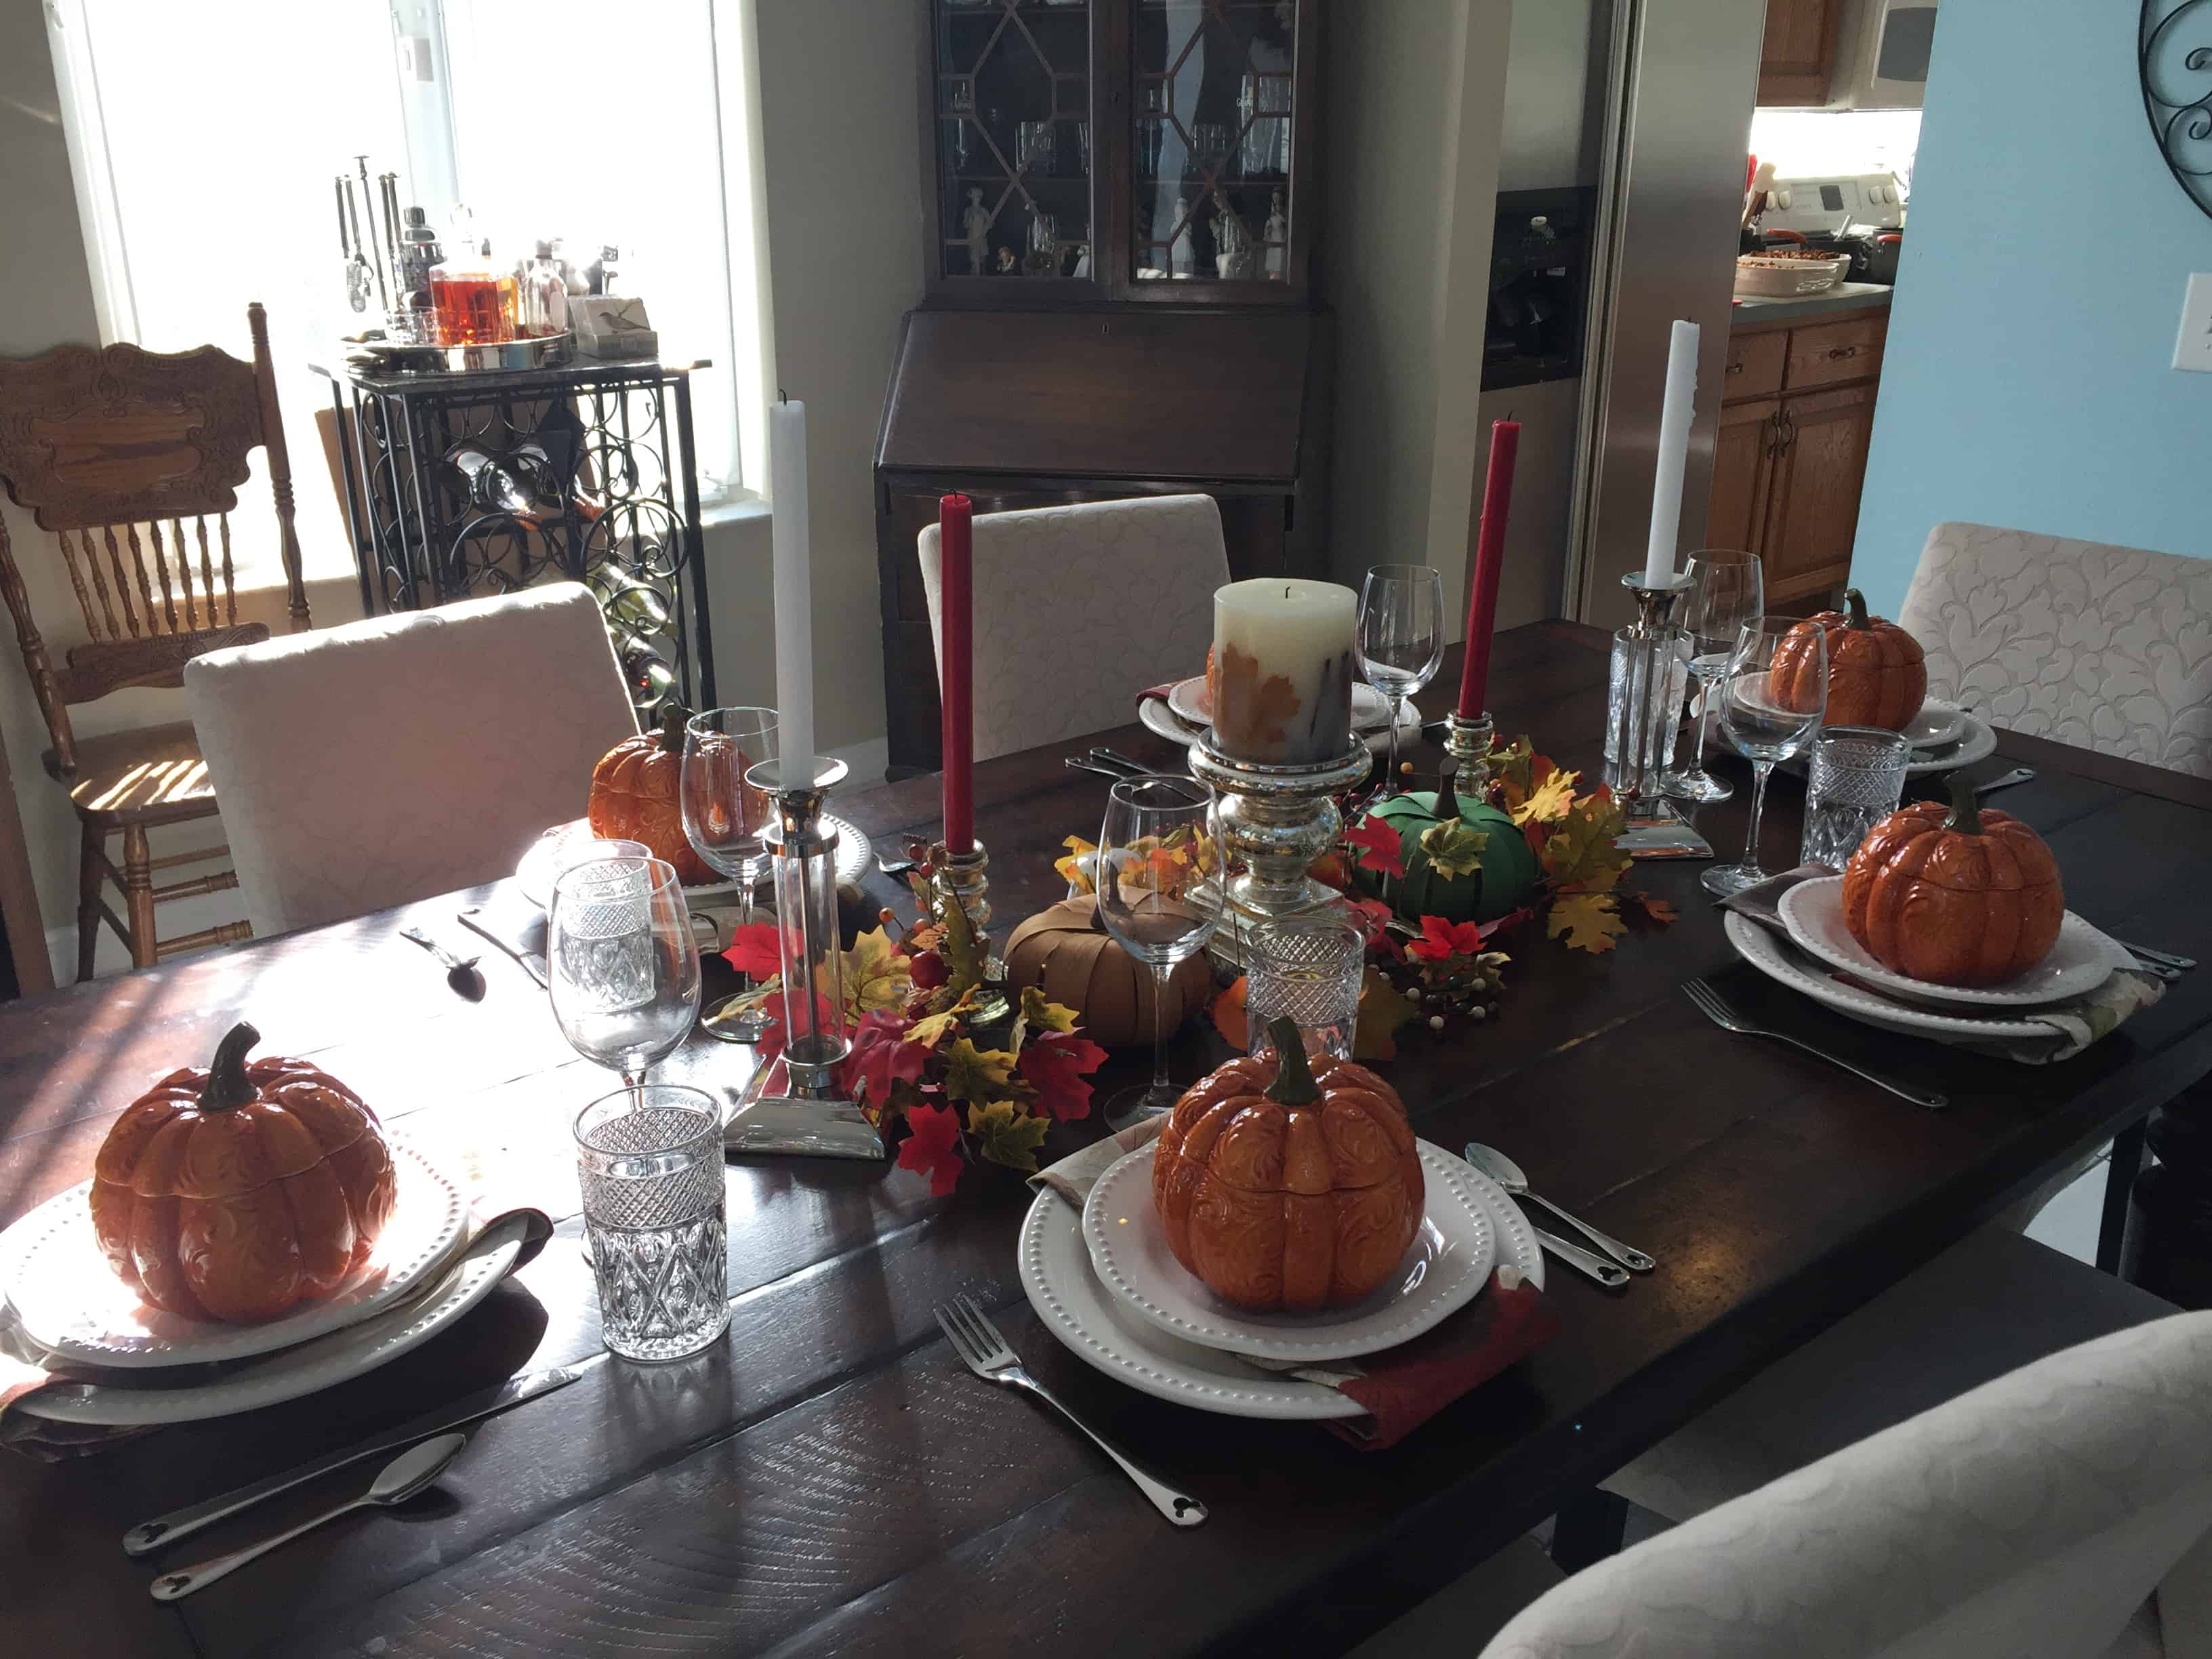 Fall Family Dinner. Simplified Fall decorating that you can do even if your short on time and energy. From deciding where to decorate to how to curate a decorations collection without spending a fortune each year, I cover the entire process. I've even given you web resources to purchase similar products so you can do an exact copy if that's what you want. Read on to see how to maximize your results while minimizing your time, energy and money. #falldecorating #simplified #chronicillness